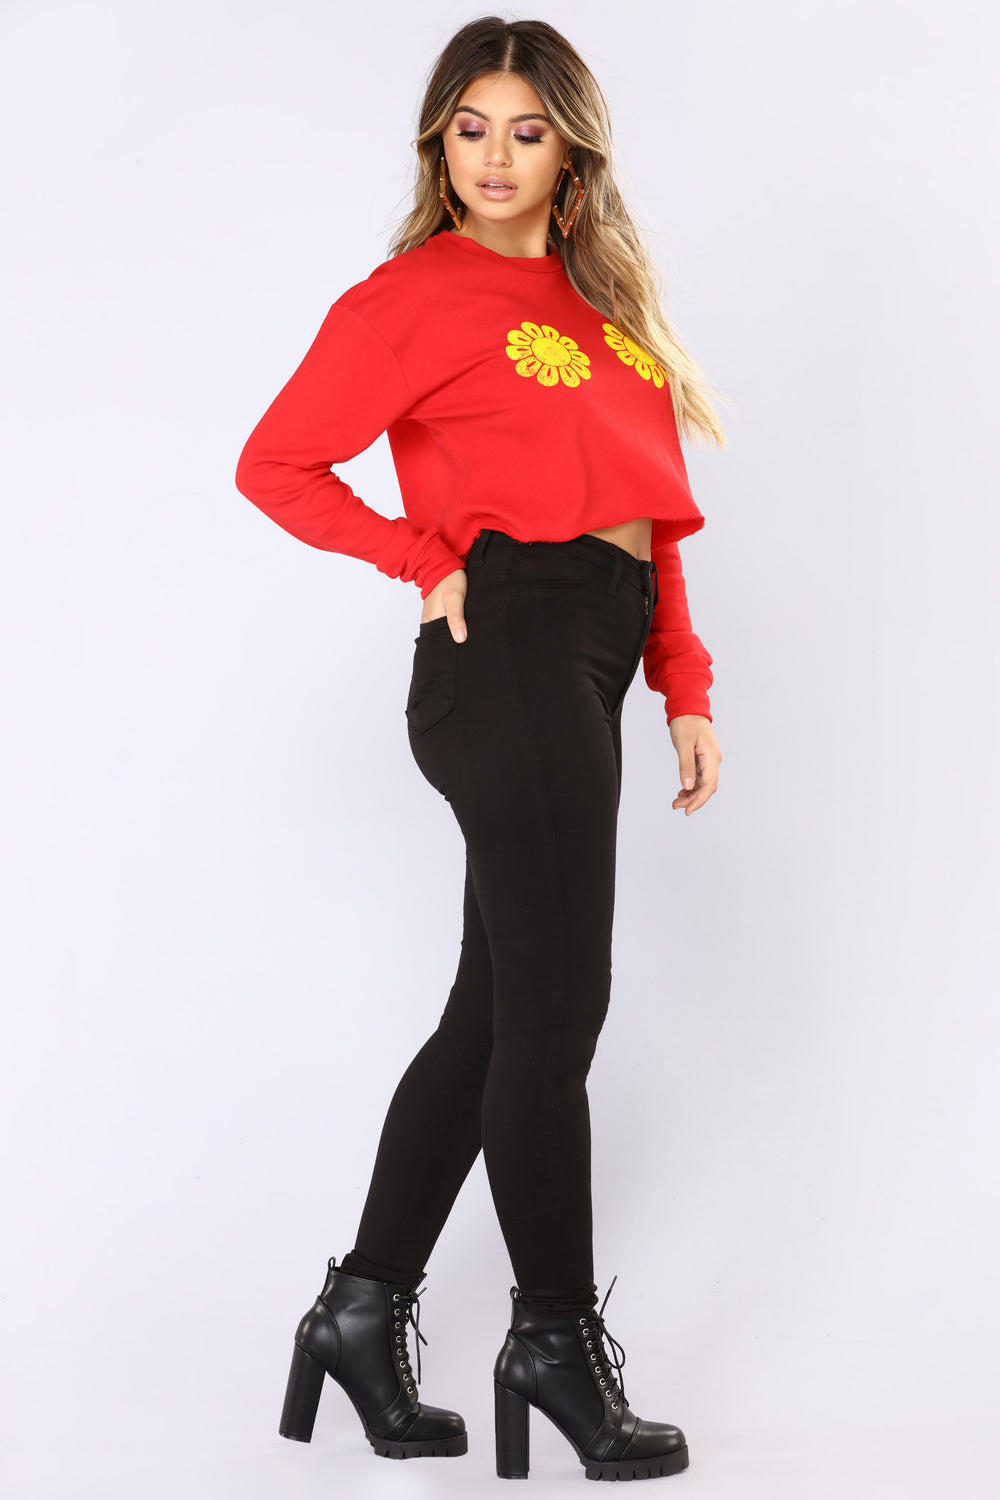 Hippie Hill Long Sleeve Top - Red